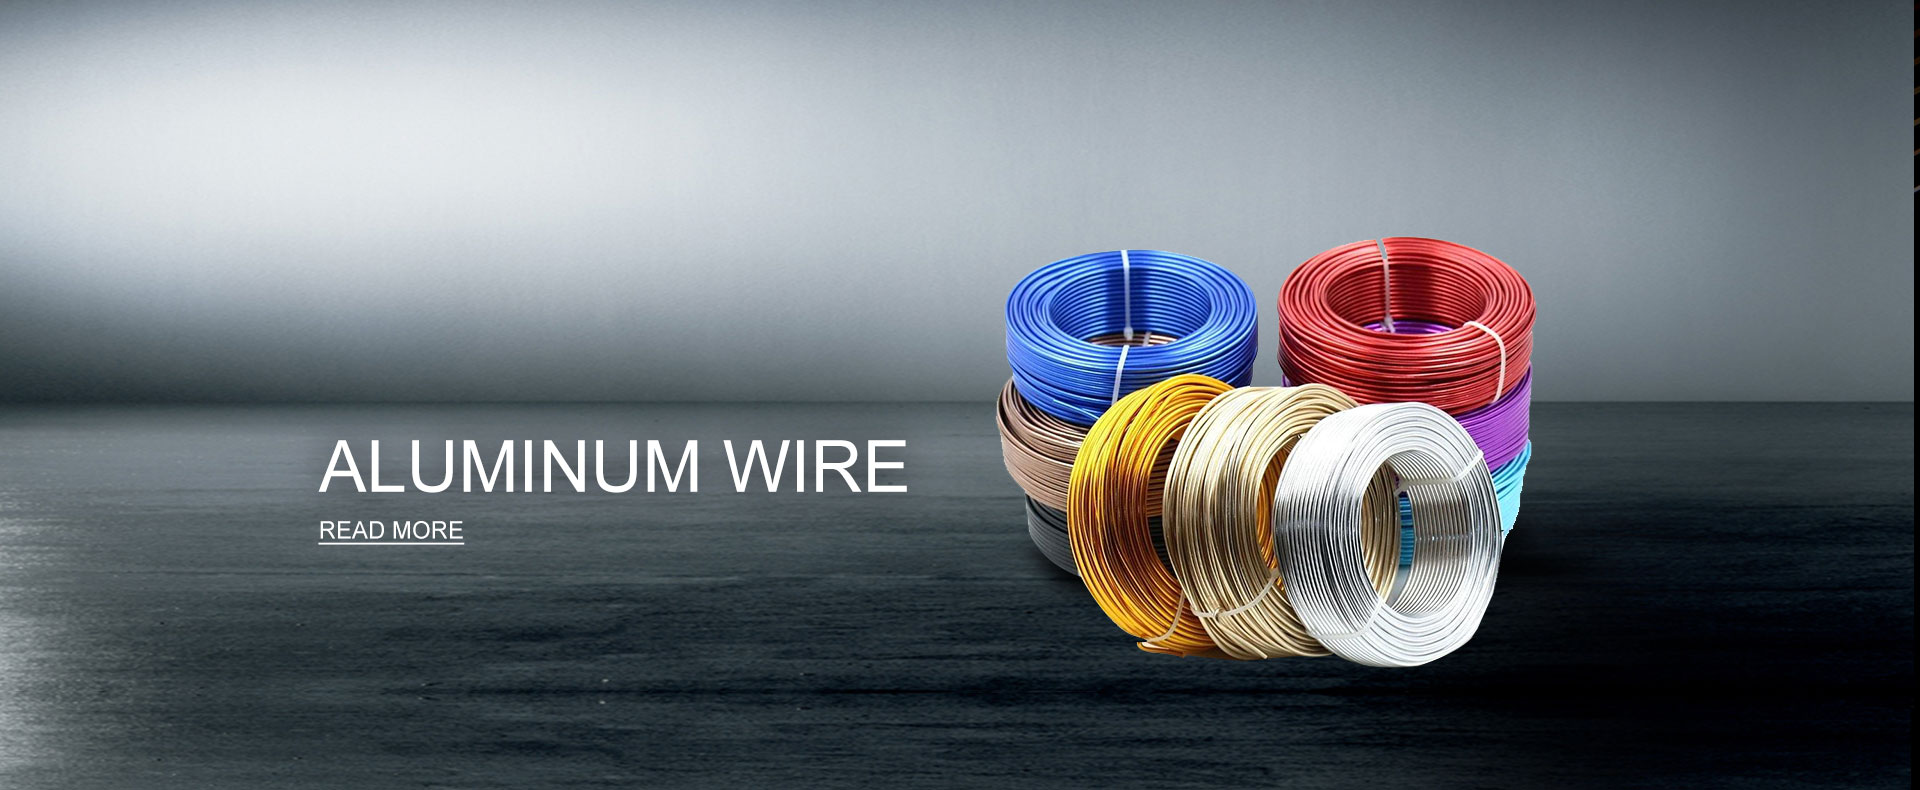 The color of the wire represents what line